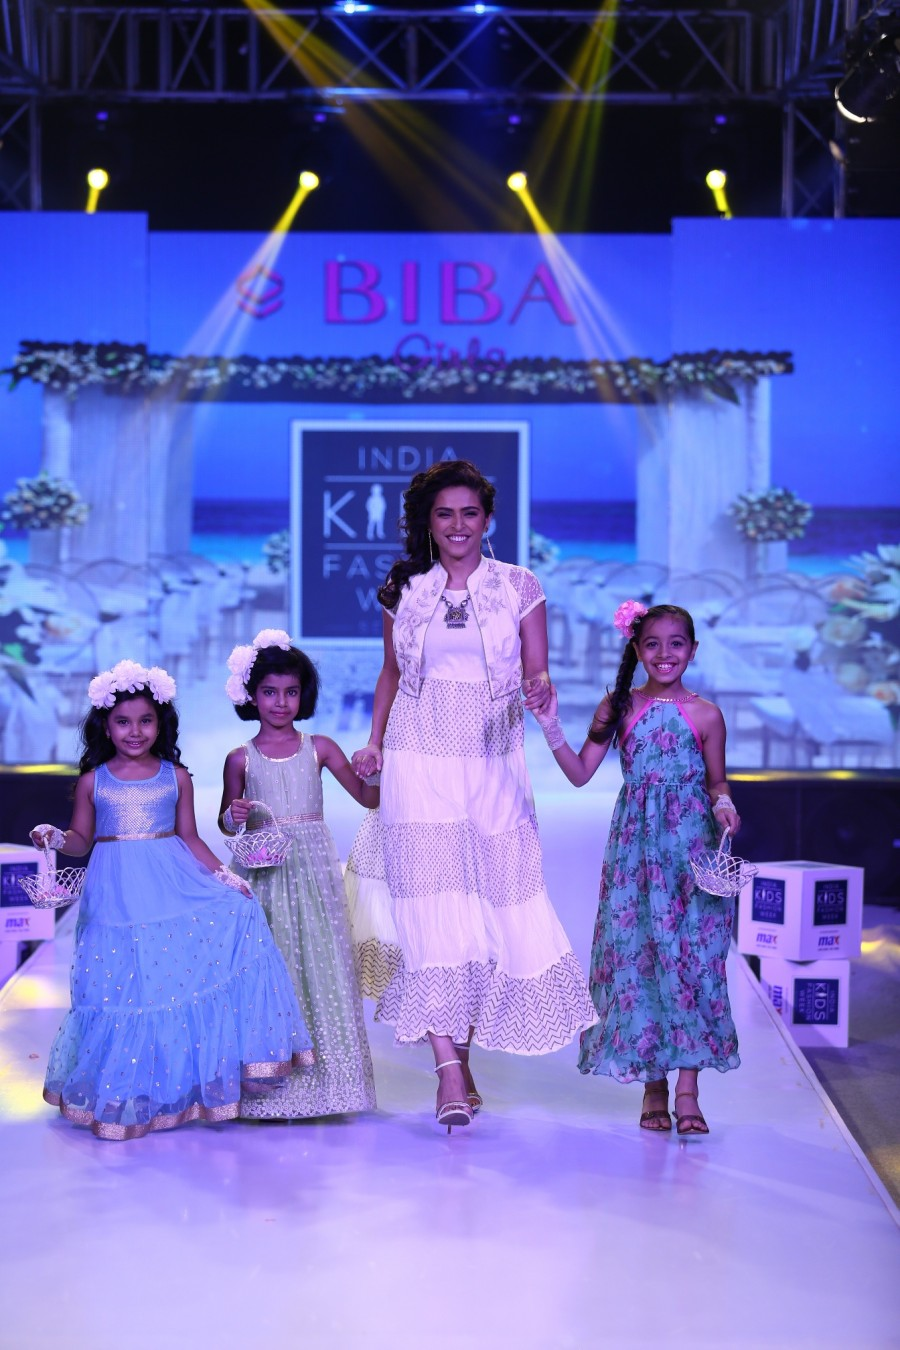 India Kids Fashion Week,India Kids Fashion Week Grand Finale,India Kids Fashion Week 2016,India Kids Fashion Week 2016 Grand Finale,Daisy Shah,Madhurima Tuli,Mika Singh,Kartik Aryan,Pia Bajpai